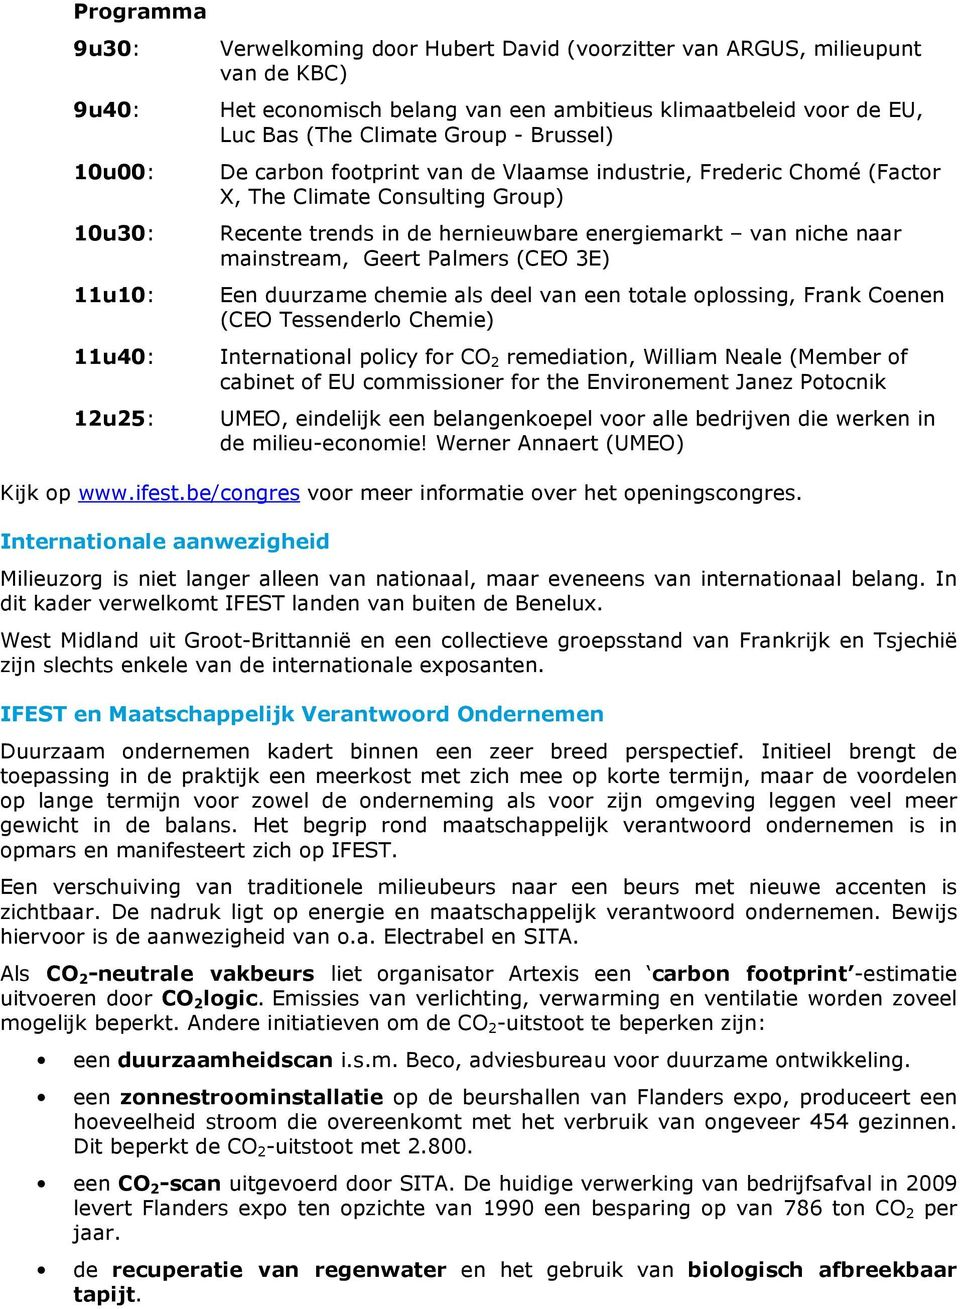 Geert Palmers (CEO 3E) 11u10: Een duurzame chemie als deel van een totale oplossing, Frank Coenen (CEO Tessenderlo Chemie) 11u40: International policy for CO 2 remediation, William Neale (Member of